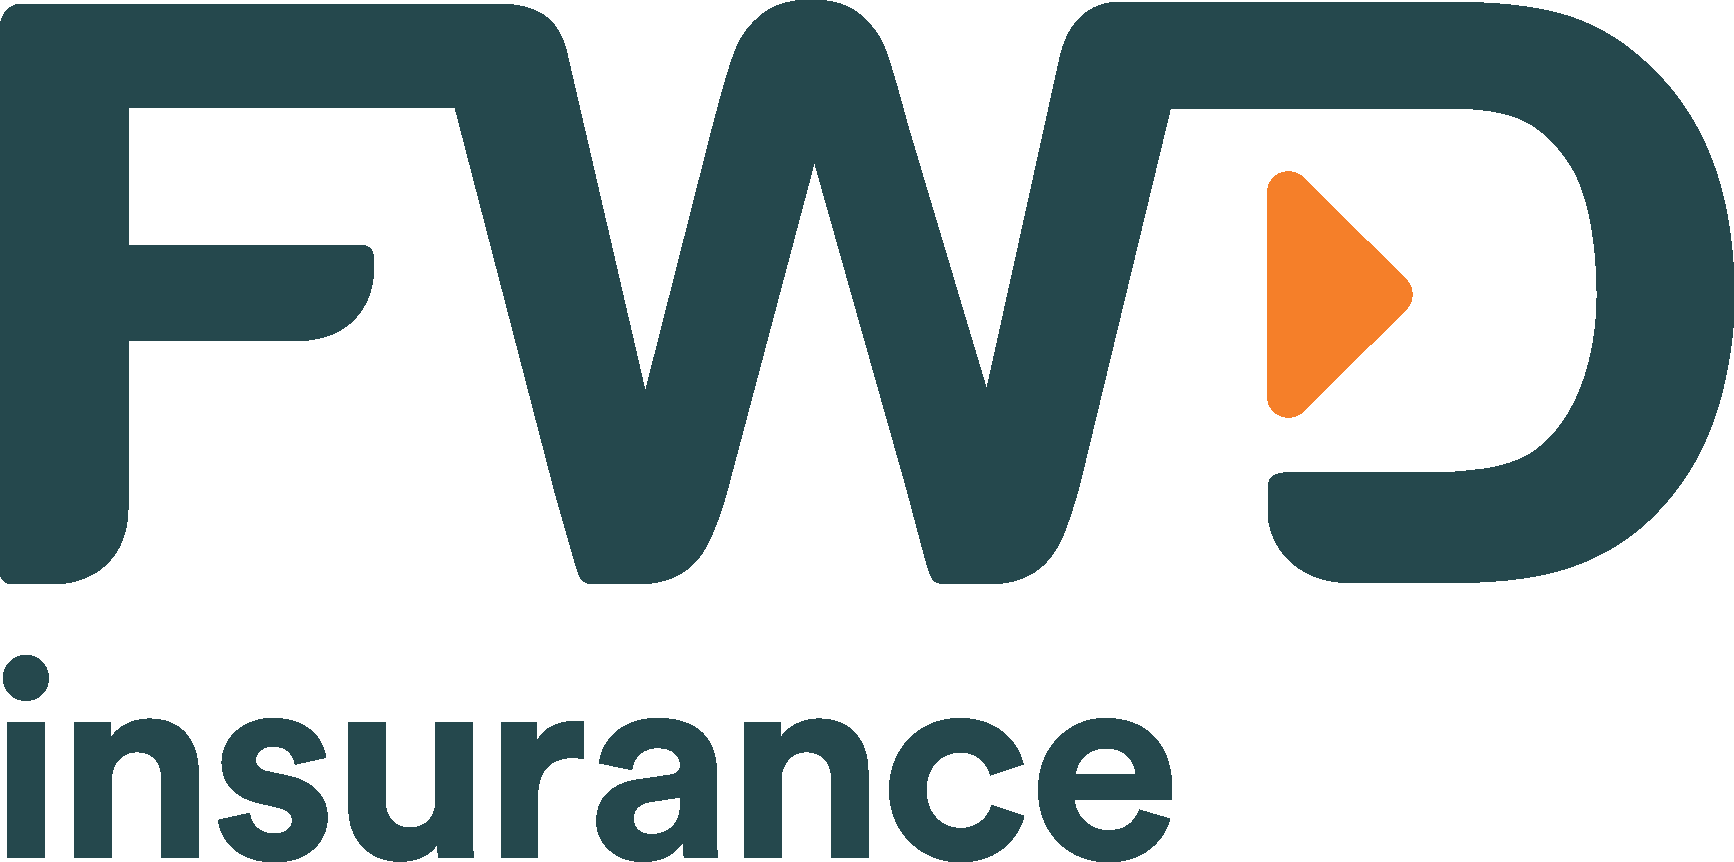 FWD Insurance Promotions & Discounts